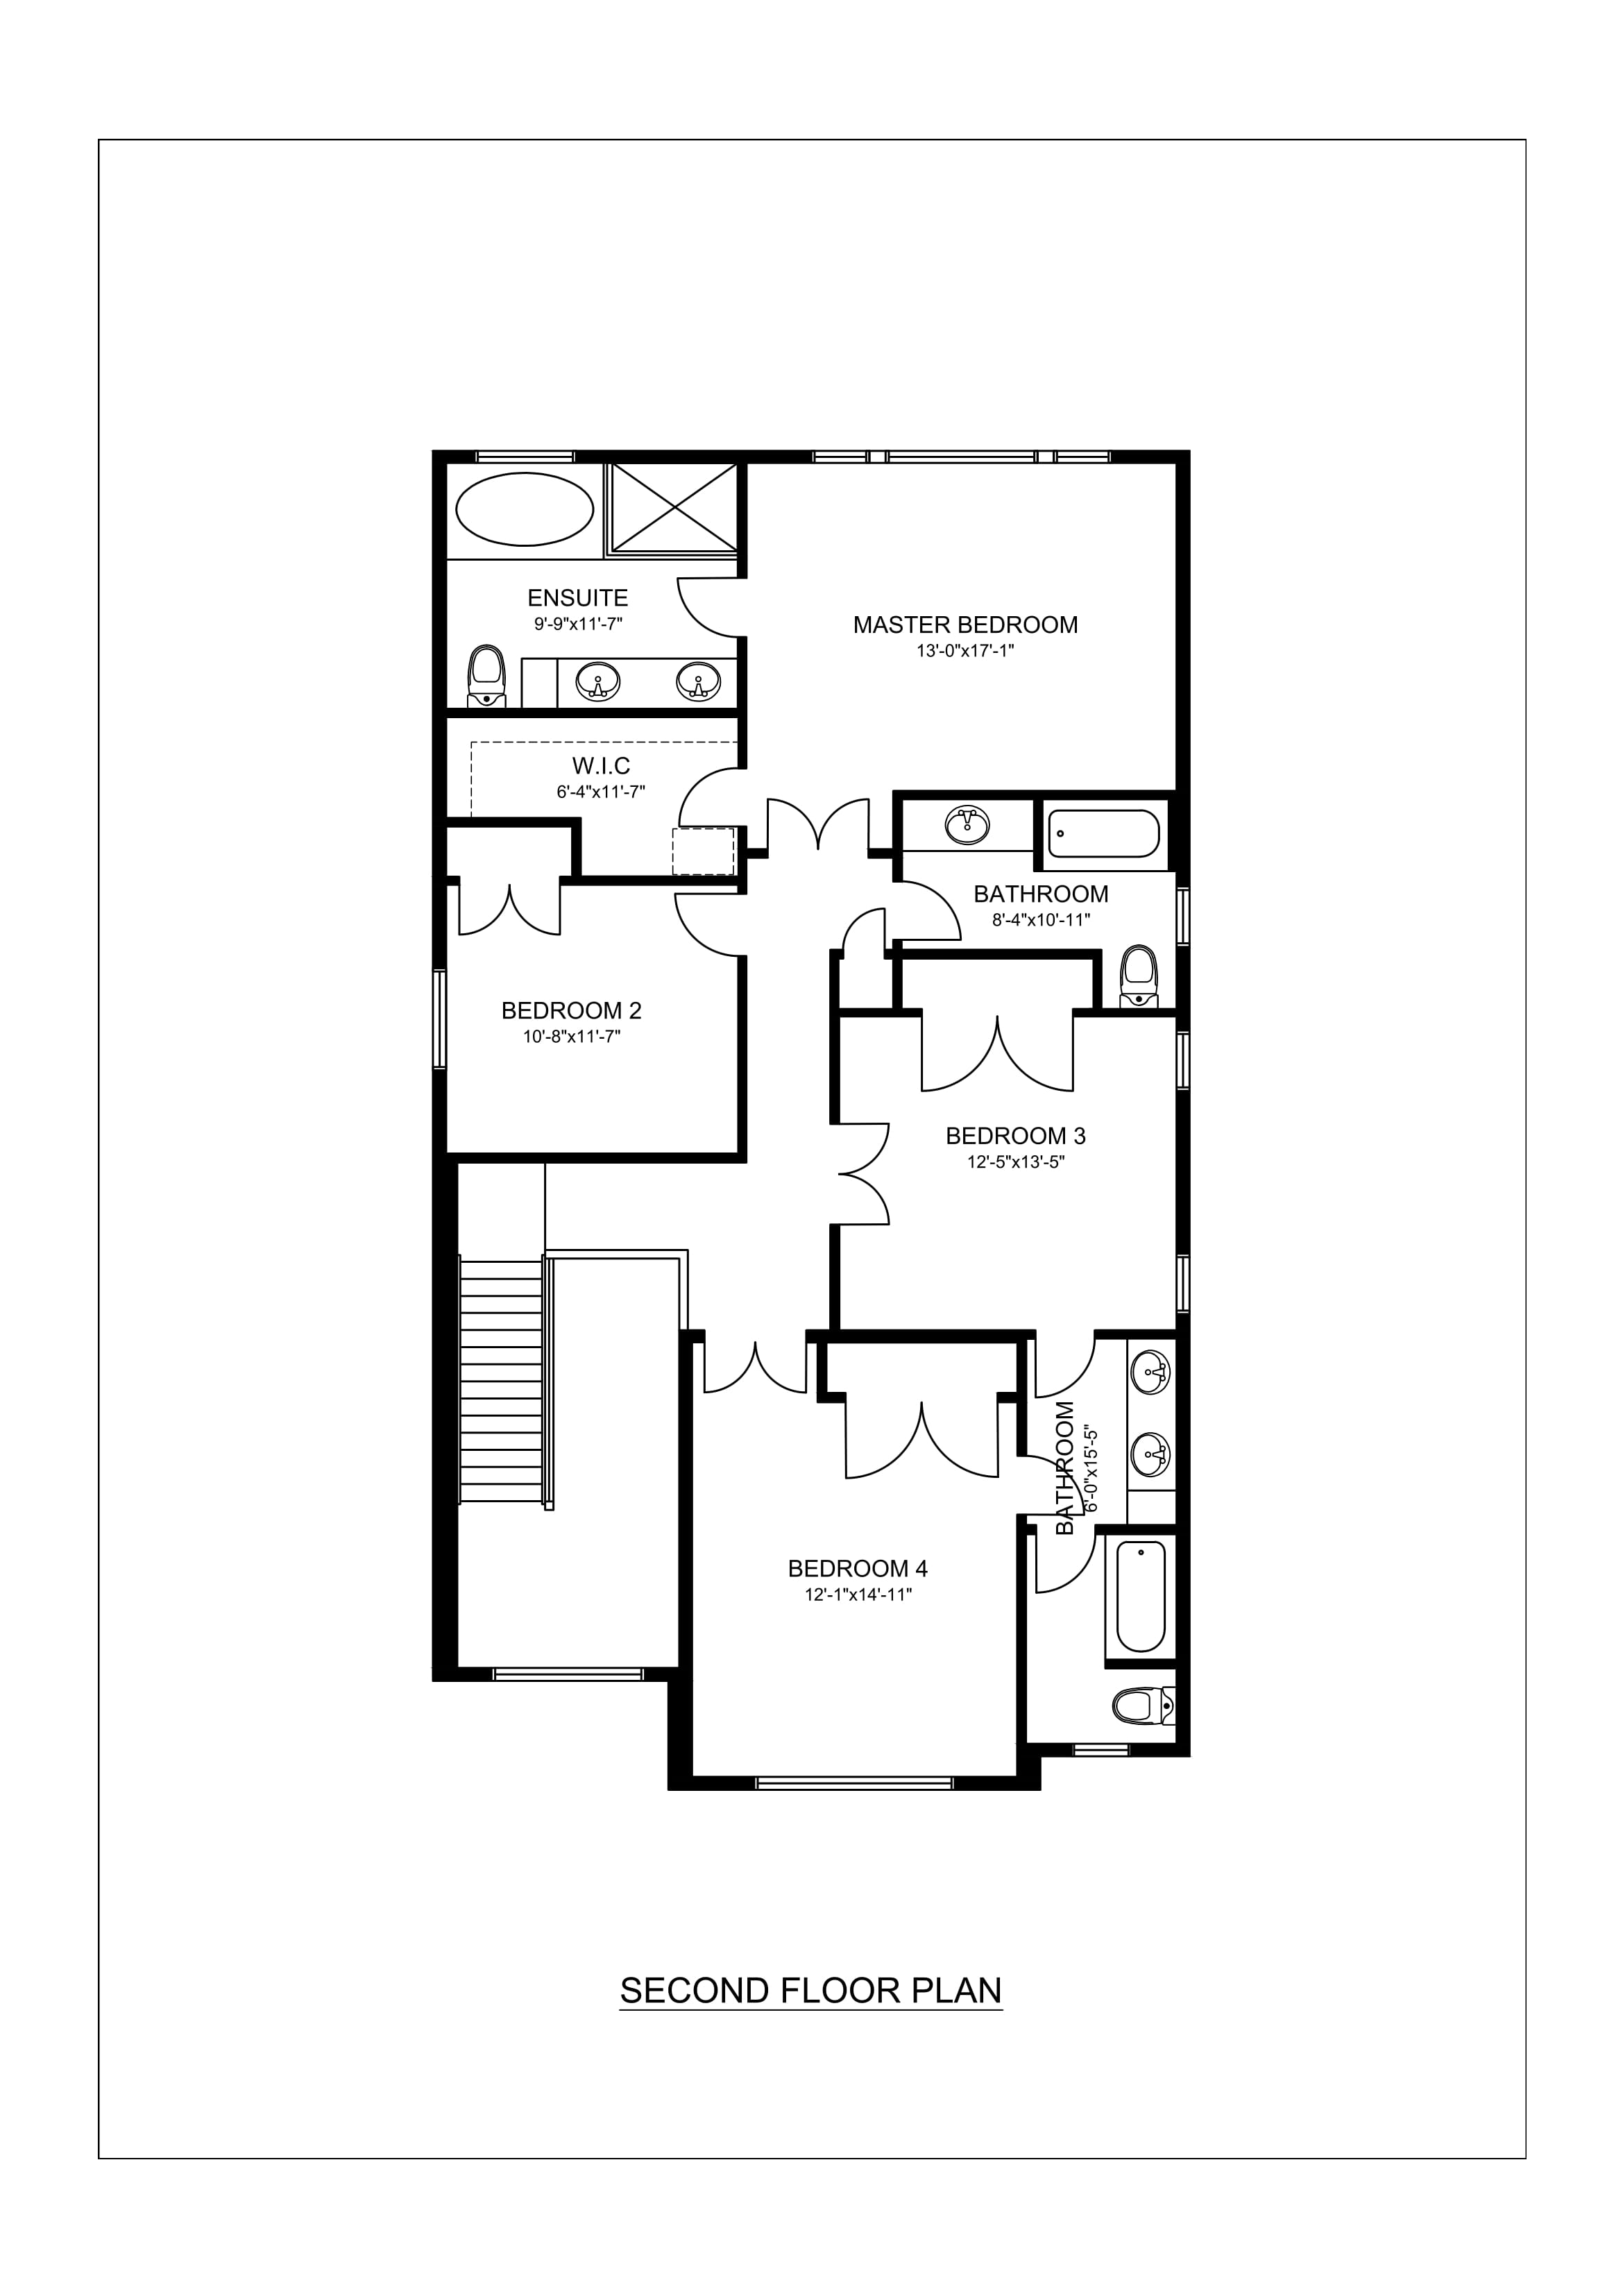 2d floor plan design rendering samples examples for Floor plans